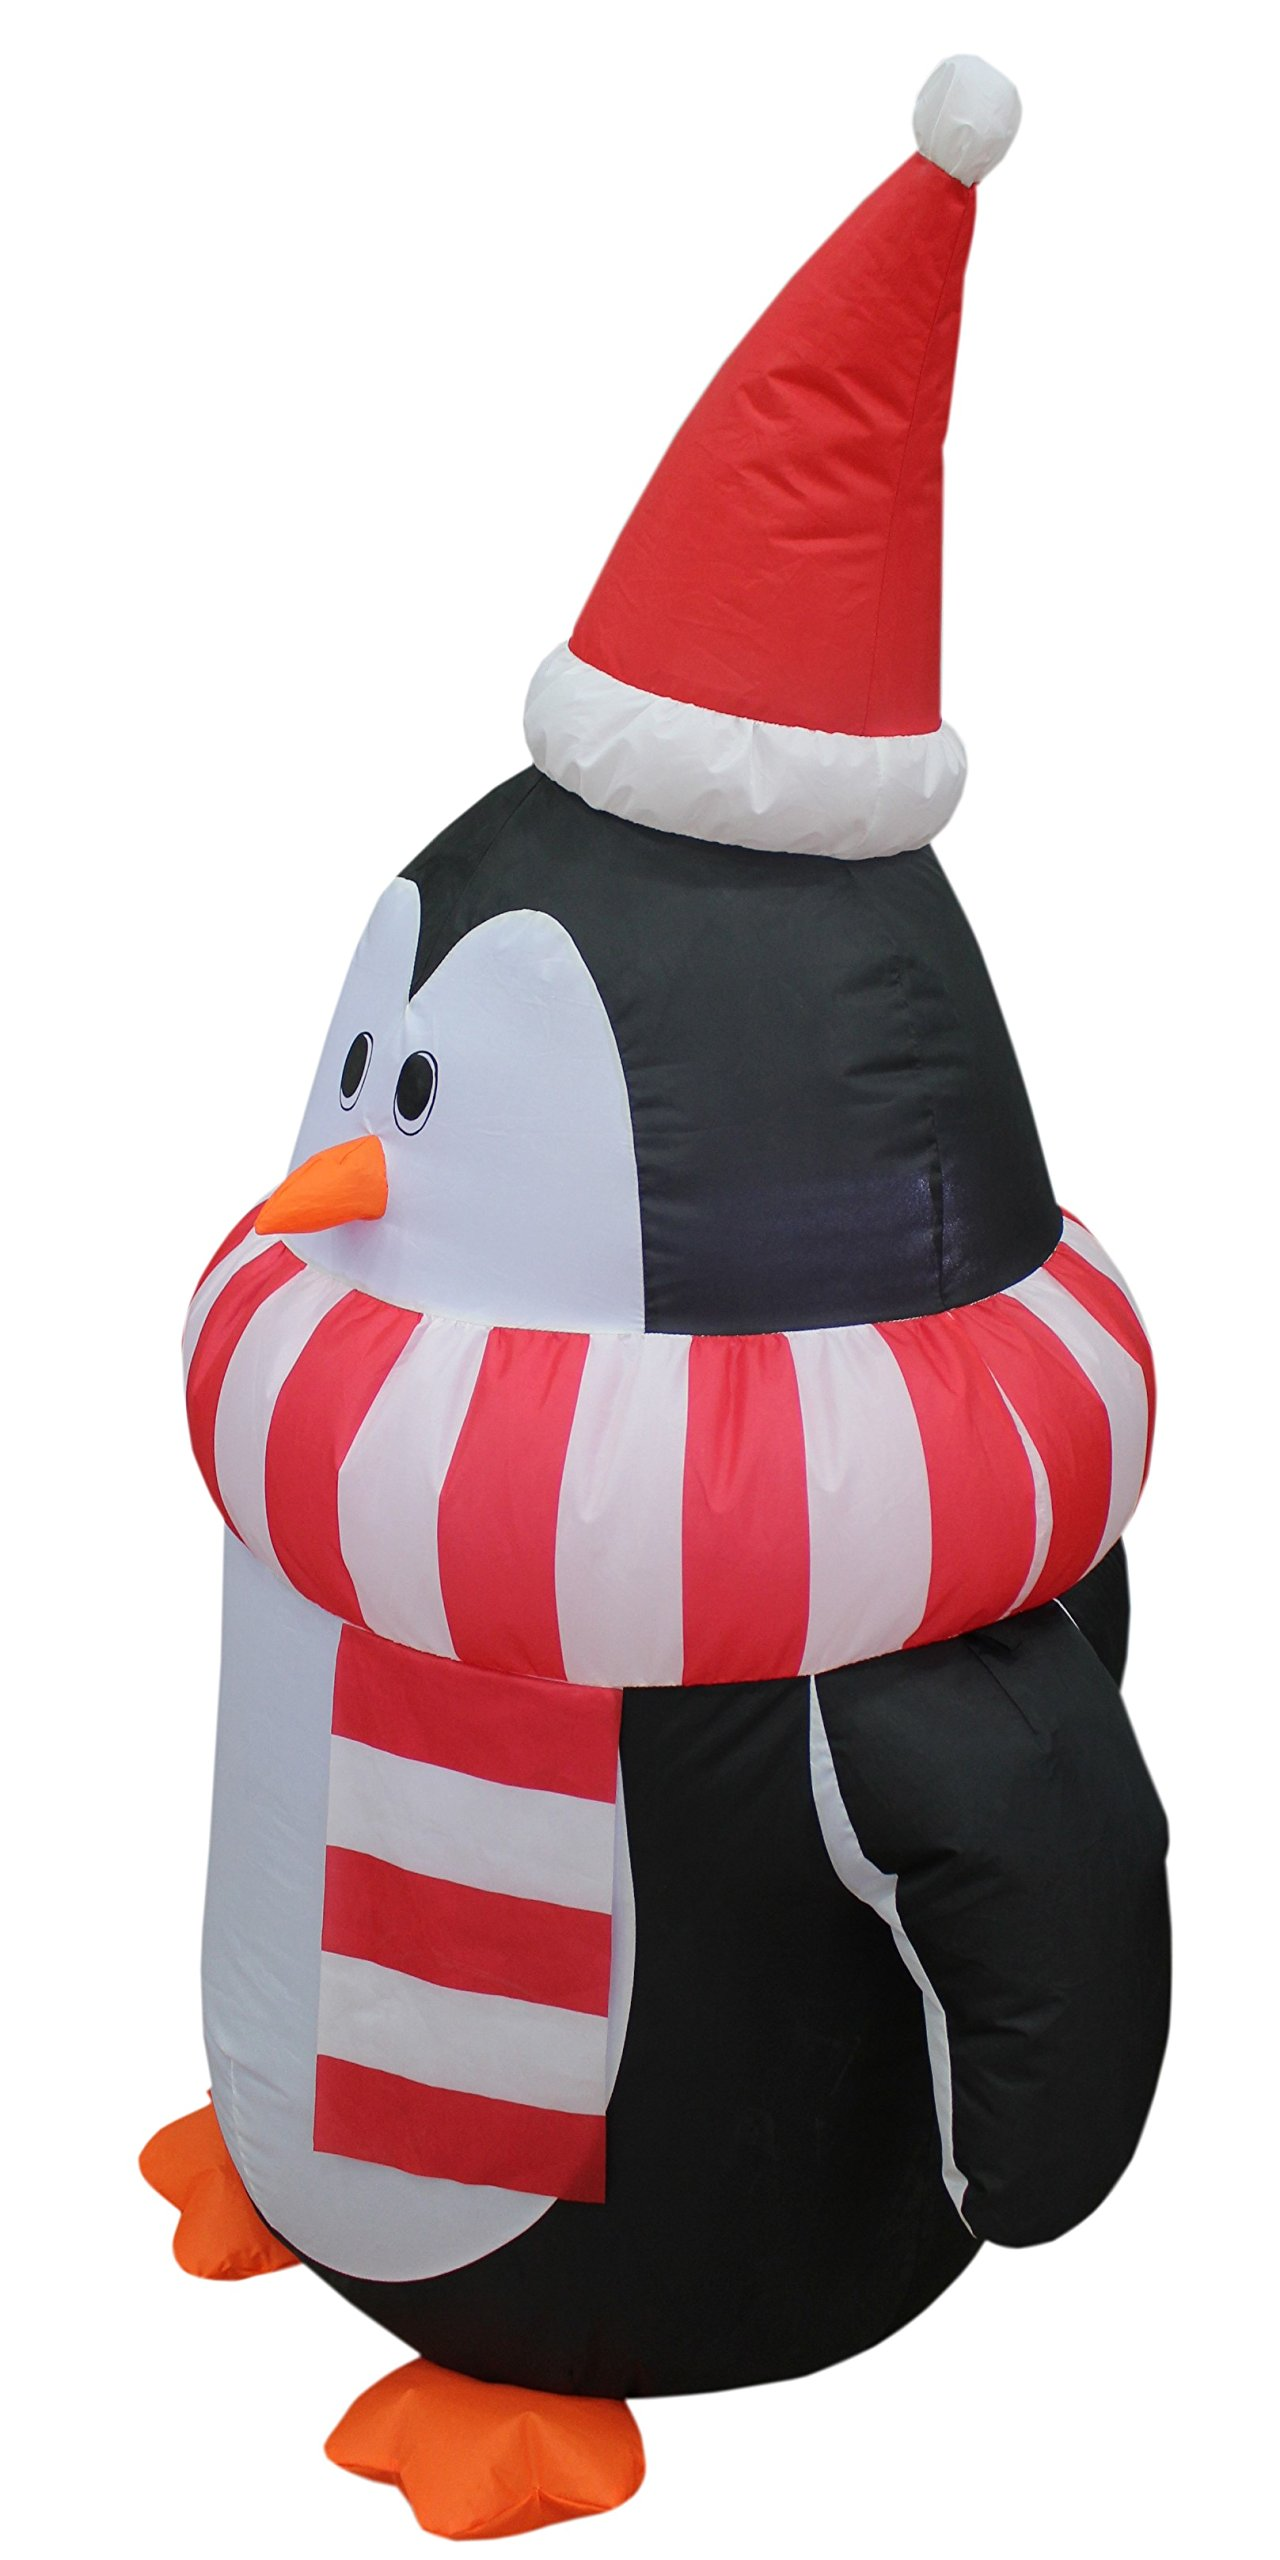 4 Foot Tall Christmas Inflatable Cute Penguin with Scarf Yard Decoration by BZB Goods (Image #3)